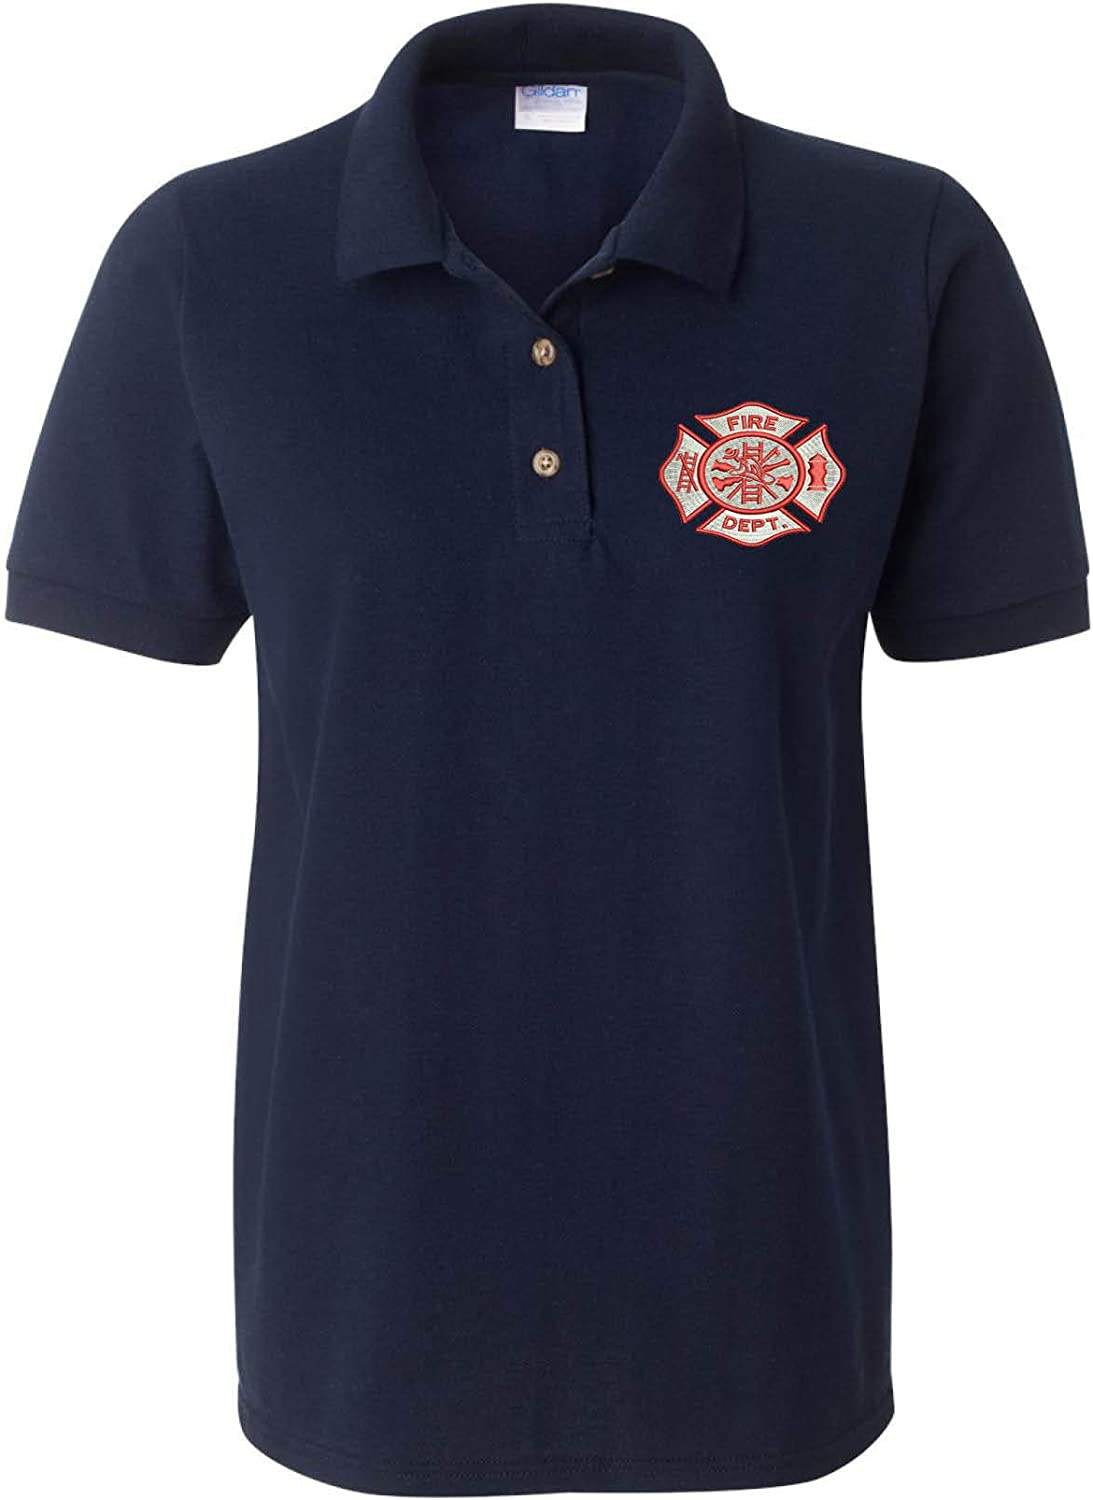 XL, Navy Blue Allntrends Womens Polo T Shirt Fire Department Embroidered Firefighter Top